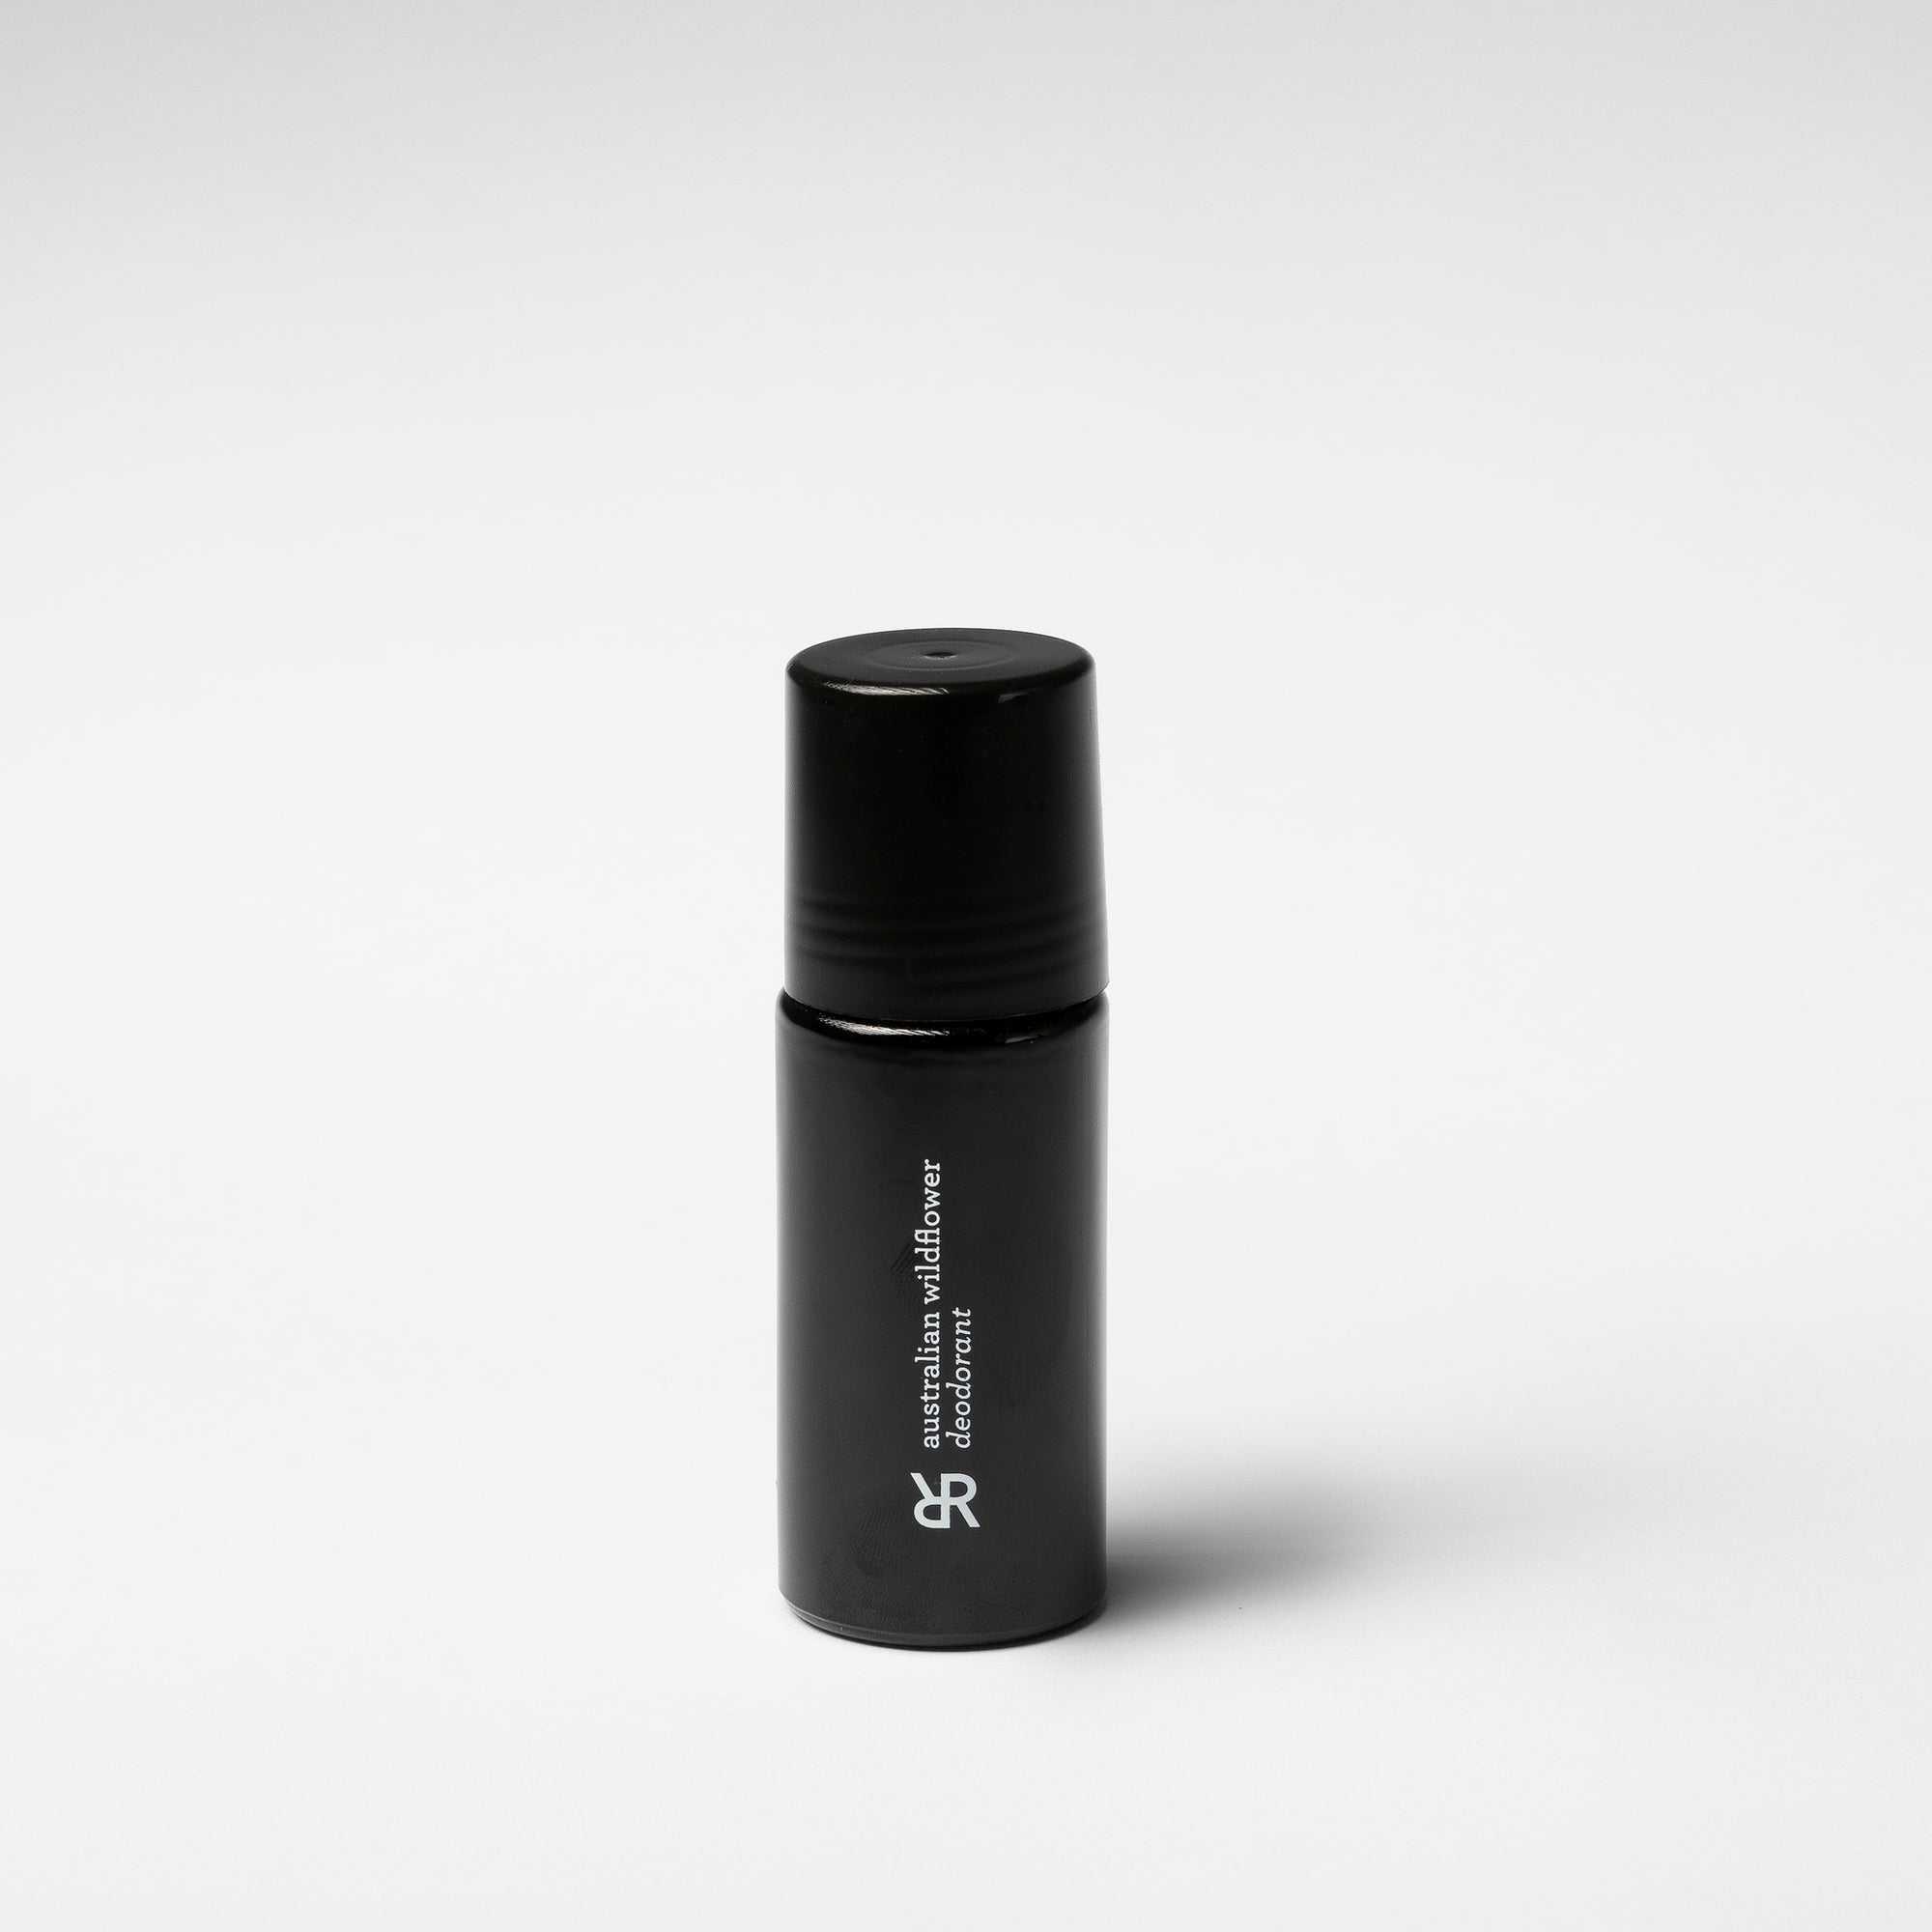 Rohr Remedy Australian Wildflower Deodorant. 100% natural and organic skincare. Buy at Skinbase.com.au